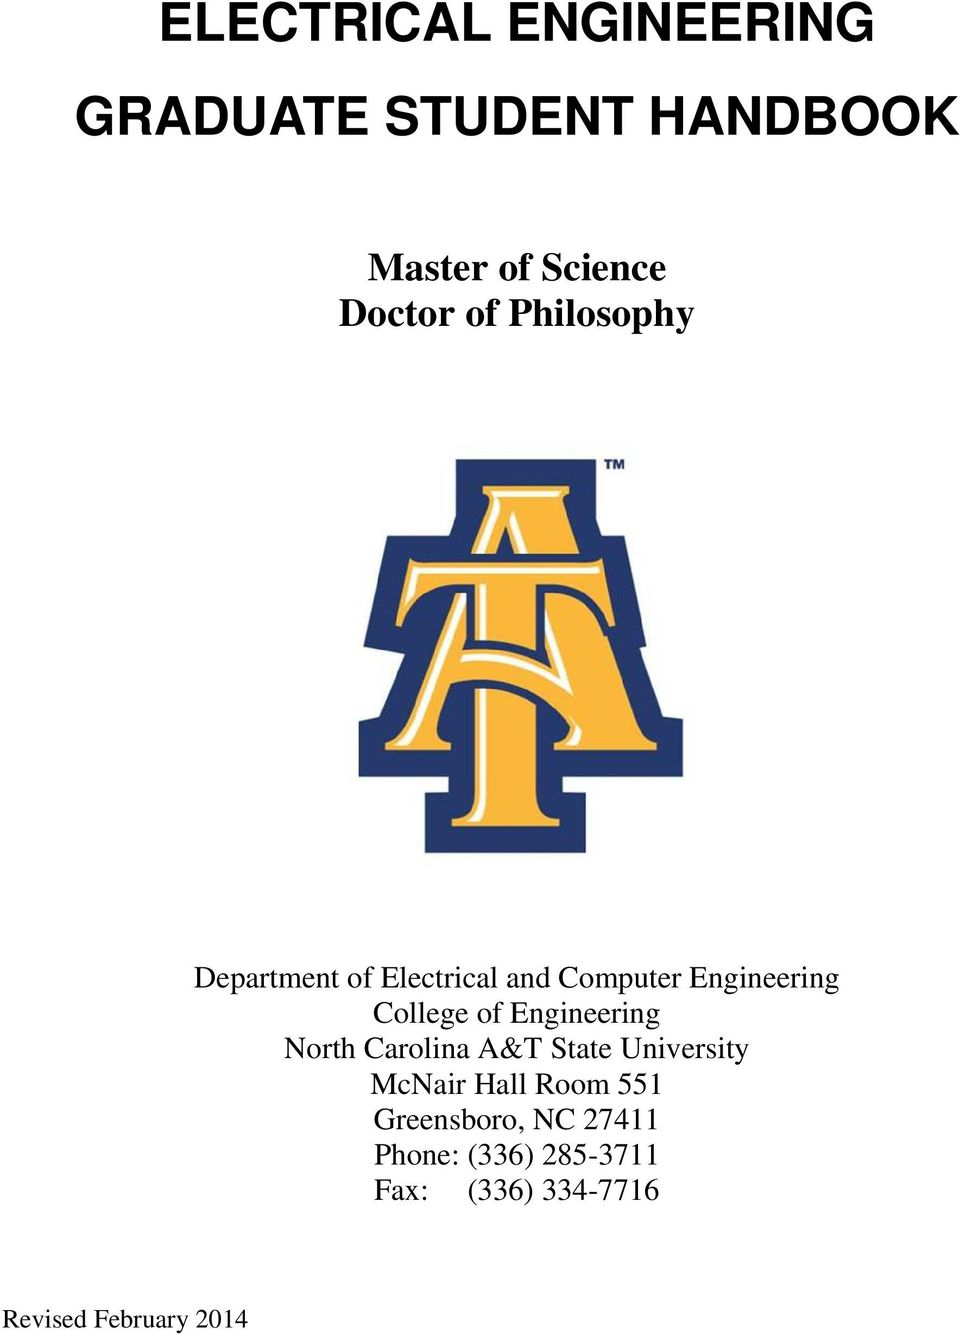 Engineering North Carolina A&T State University McNair Hall Room 551